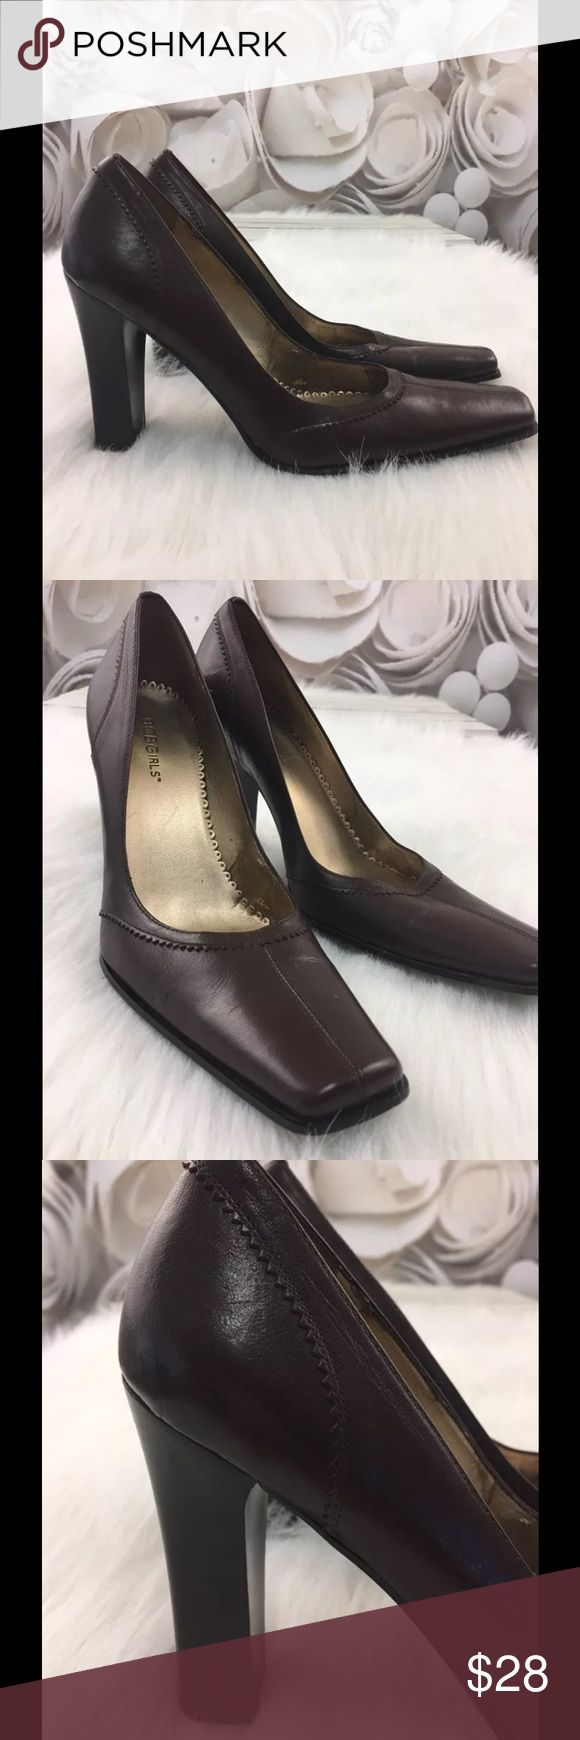 BCBGirls Heels Womens Brown Leather Career Sz 8.5B BCBGirls Heels Womens Pumps Shoes Brown Leather Square Toe Career Brown Sz 8.5B  Shoe Details: Brand: BCBGirls Style: Pumps / Heels Condition:  Excellent Used Condition Fabric:  Leather Size:  8.5B Colors/Patterns:  Brown / Solid BCBGirls Shoes Heels